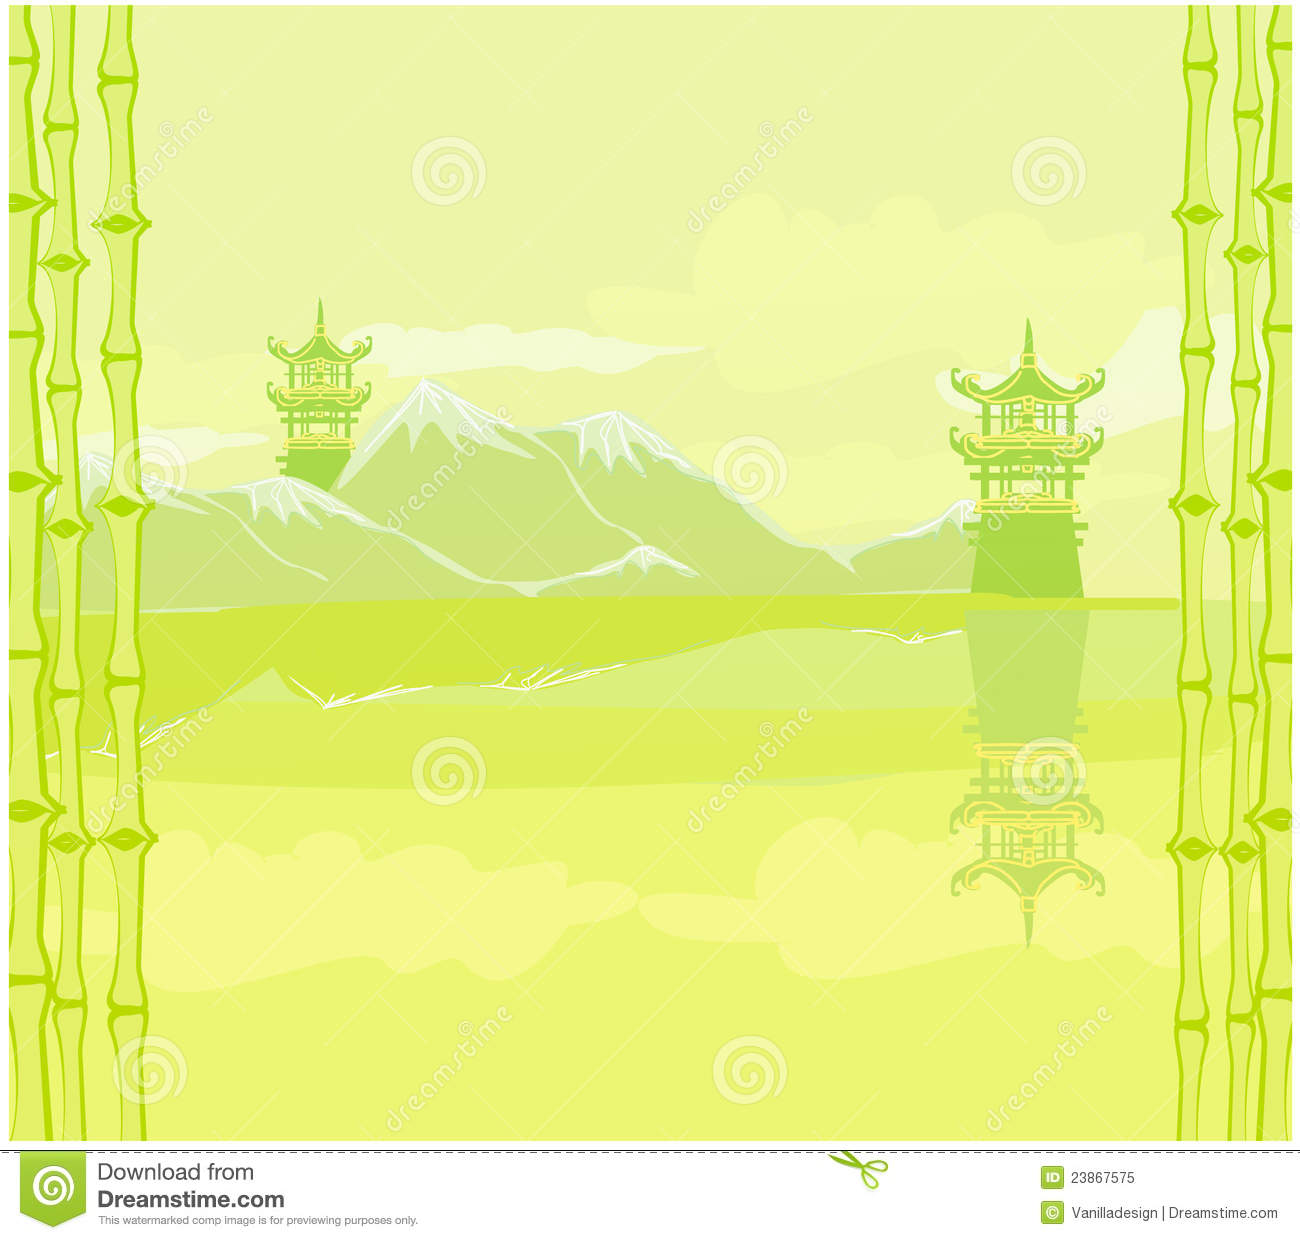 Abstract Chinees landschap